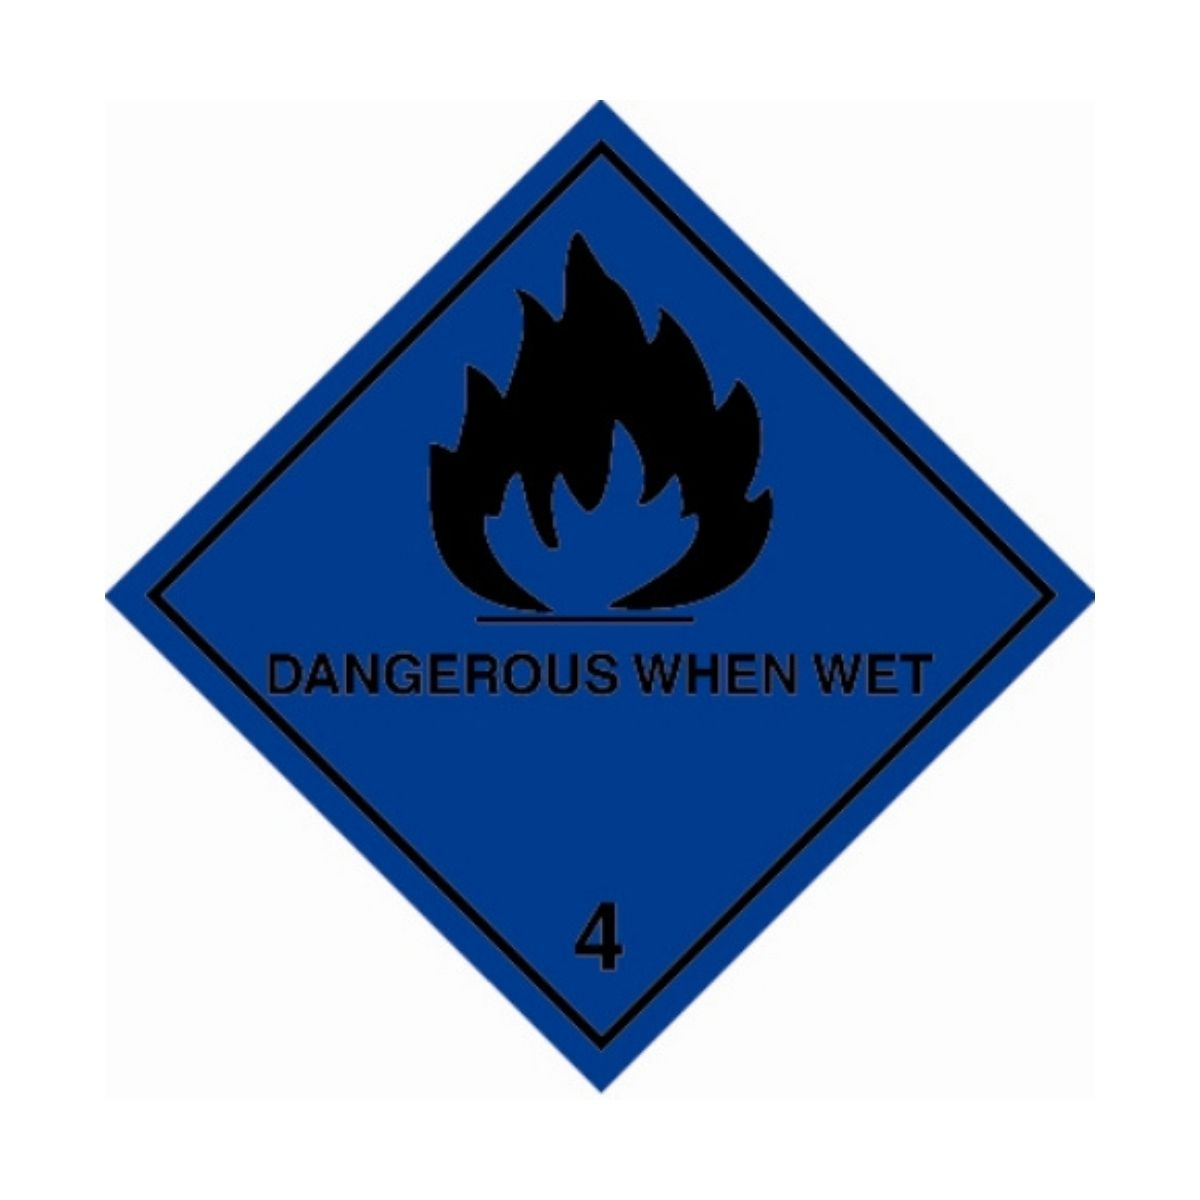 HD1412 UN Hazard Warning Diamond Class 4.3 Dangerous When Wet